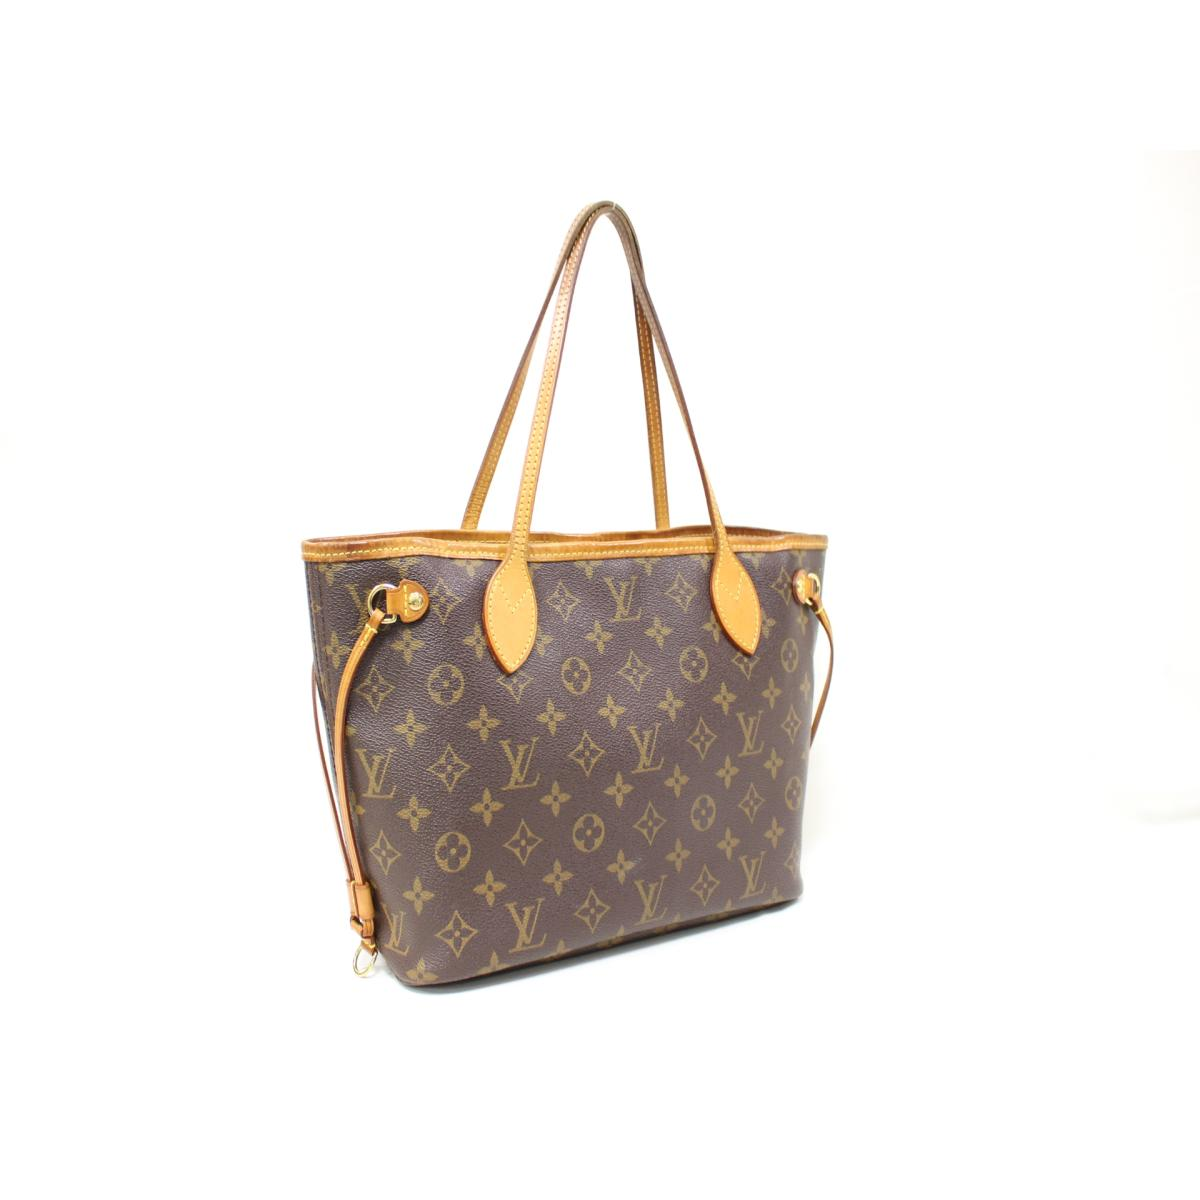 349958e6dec8 (Free shipping) Auth LOUIS VUITTON Neverful PM tote bag M40155 Monogram Used  Vintage